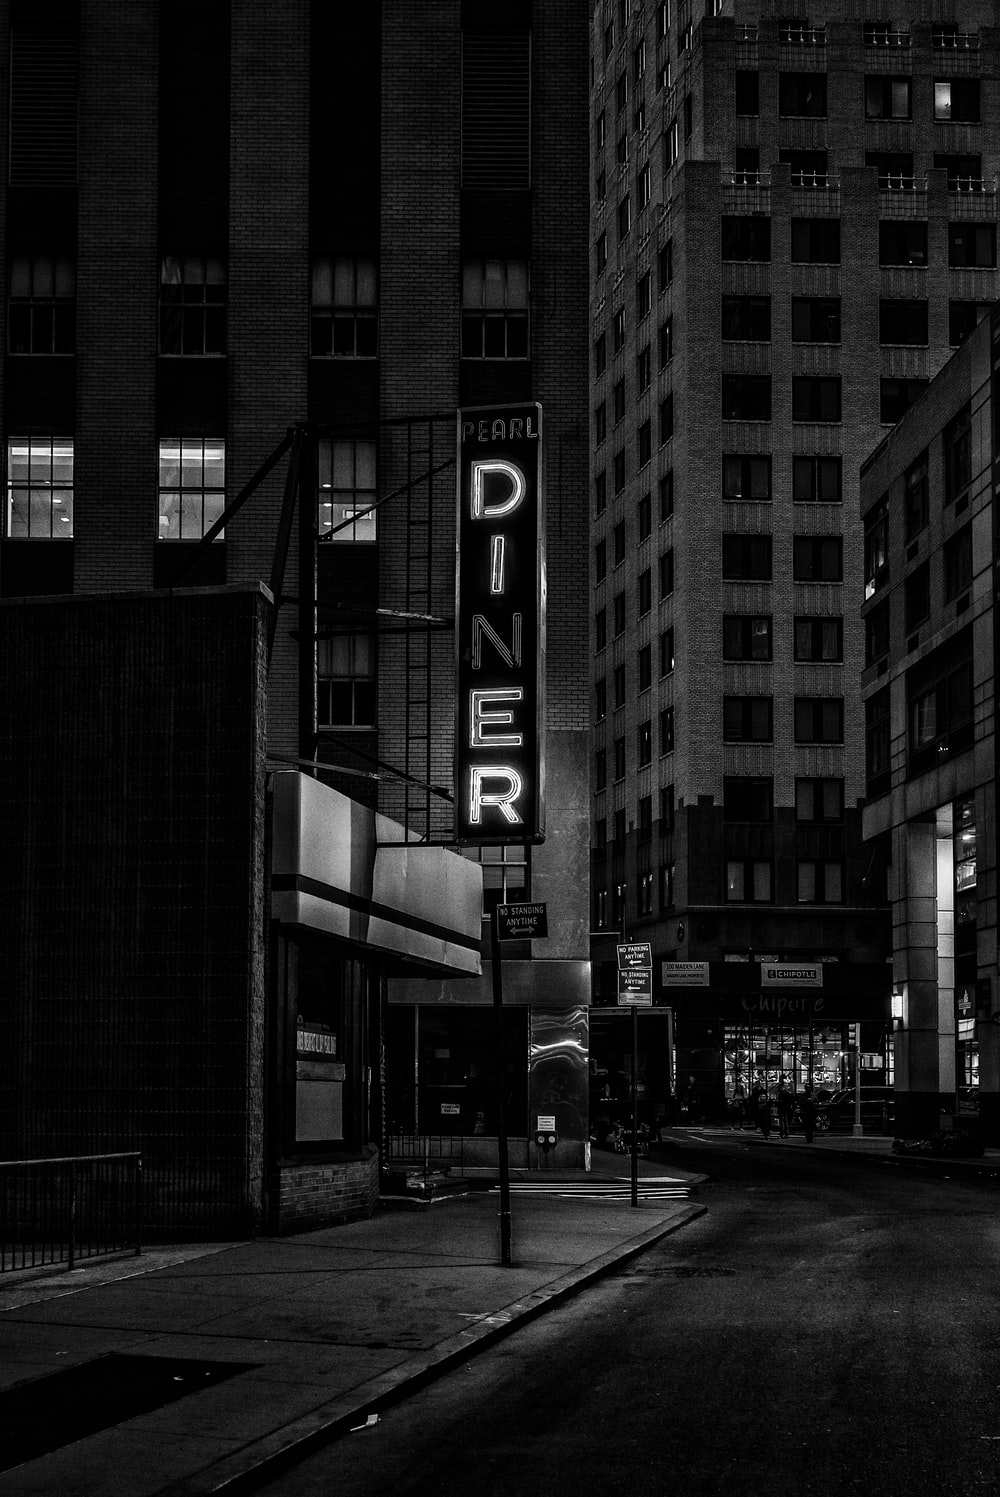 grayscale photo of Pearl Diner sign in city